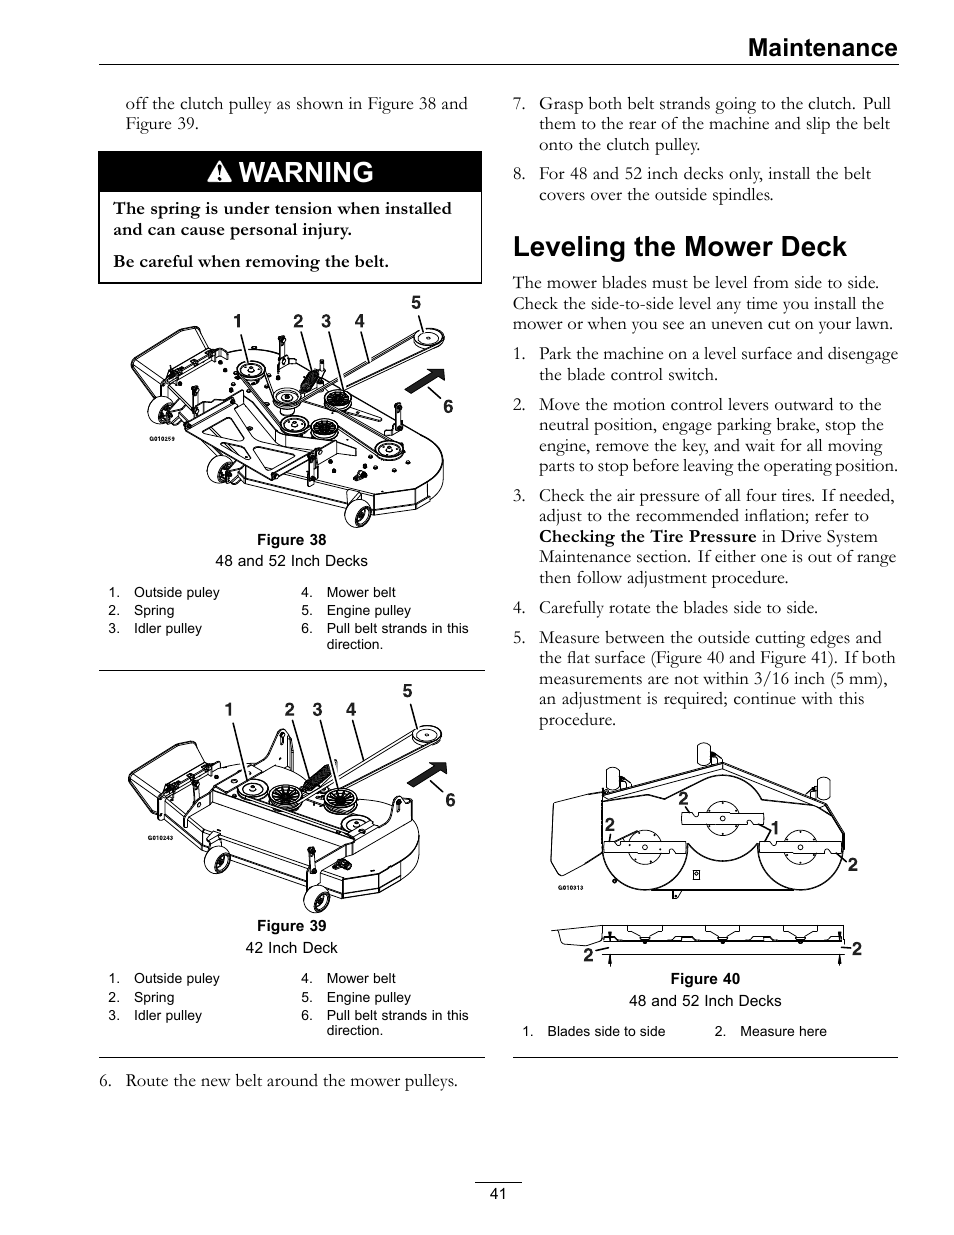 medium resolution of leveling the mower deck warning maintenance exmark quest 4500 450 user manual page 41 56